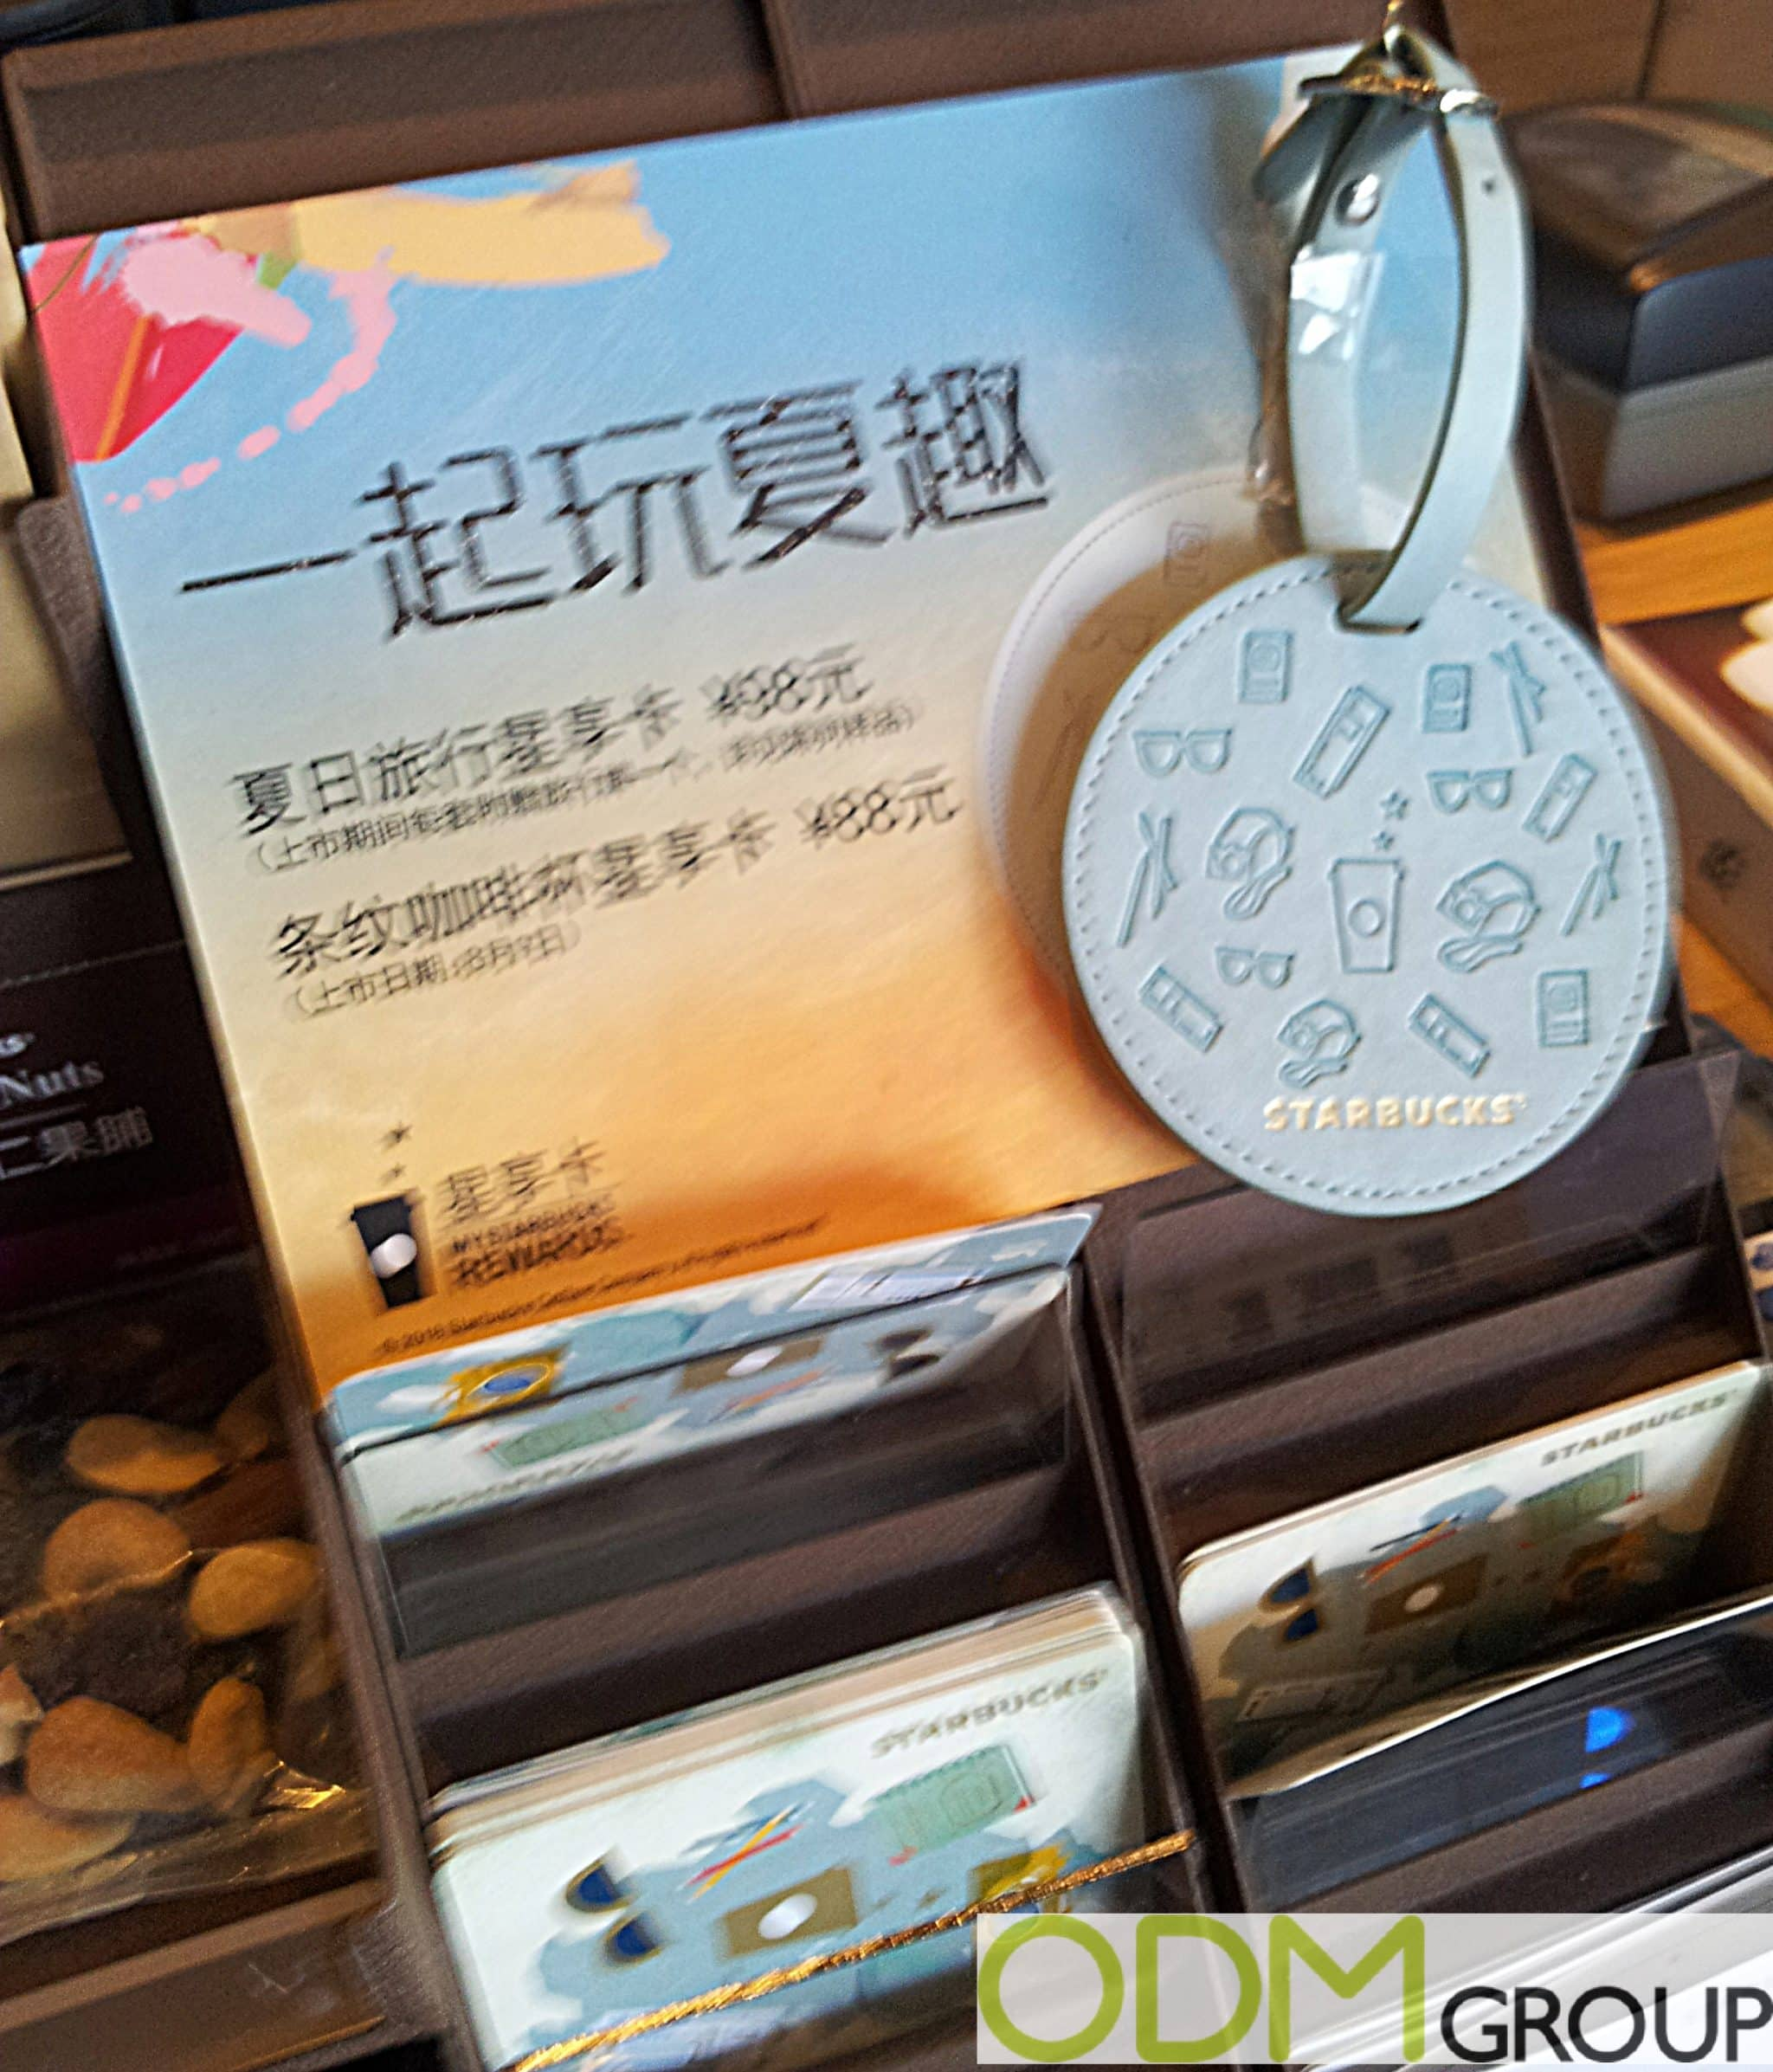 Starbucks Purchase with Purchase Branded Luggage Tags